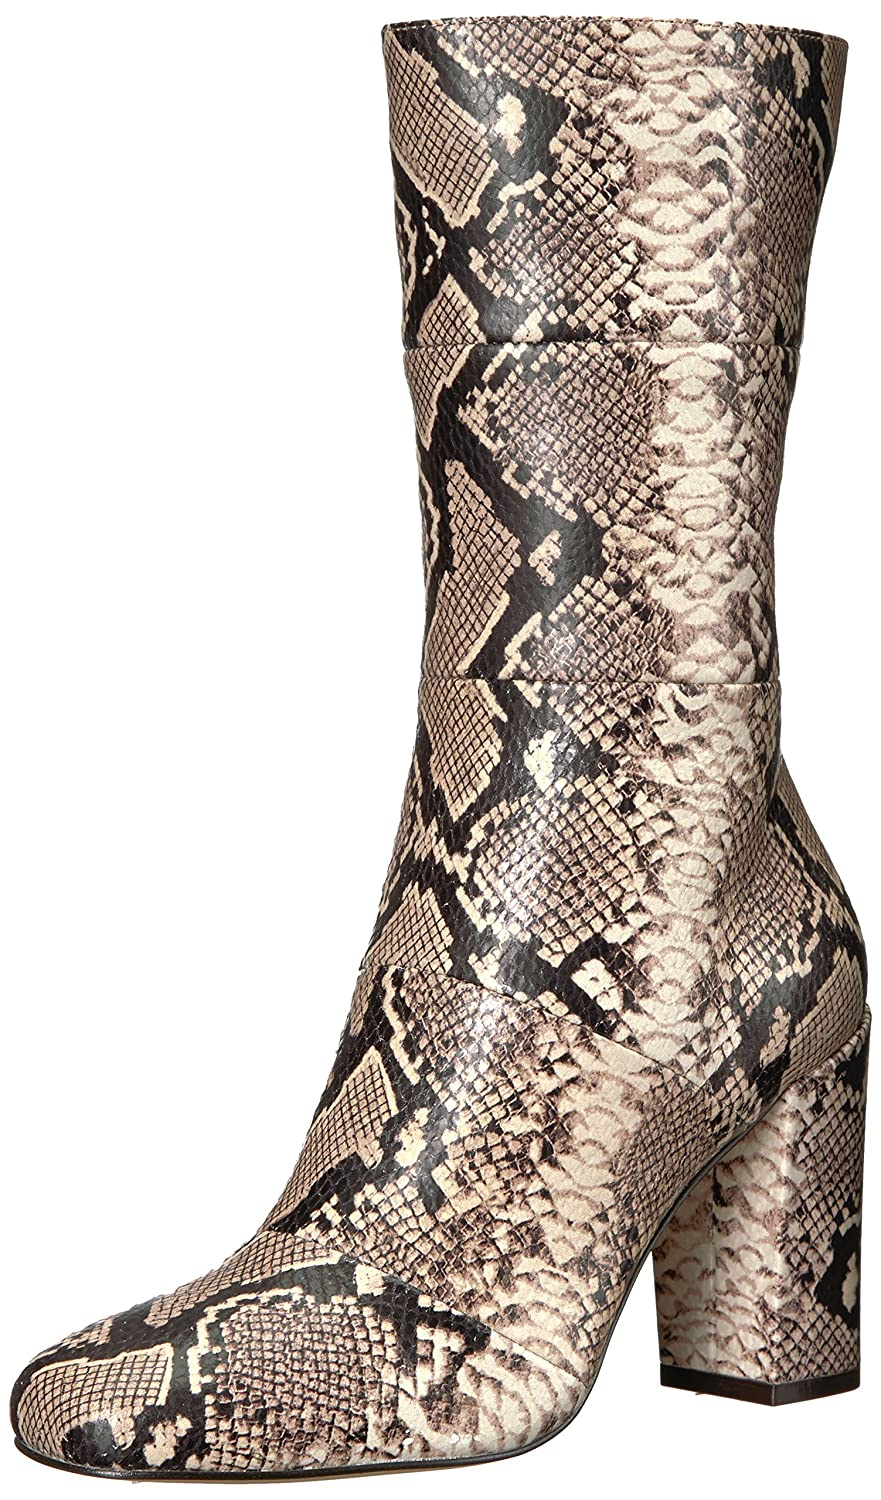 The Fix Women's Skylar Mid-Shaft Material-Block Fashion Boot B074JNN7DF 7 B(M) US|Mushroom Python Embossed Leather